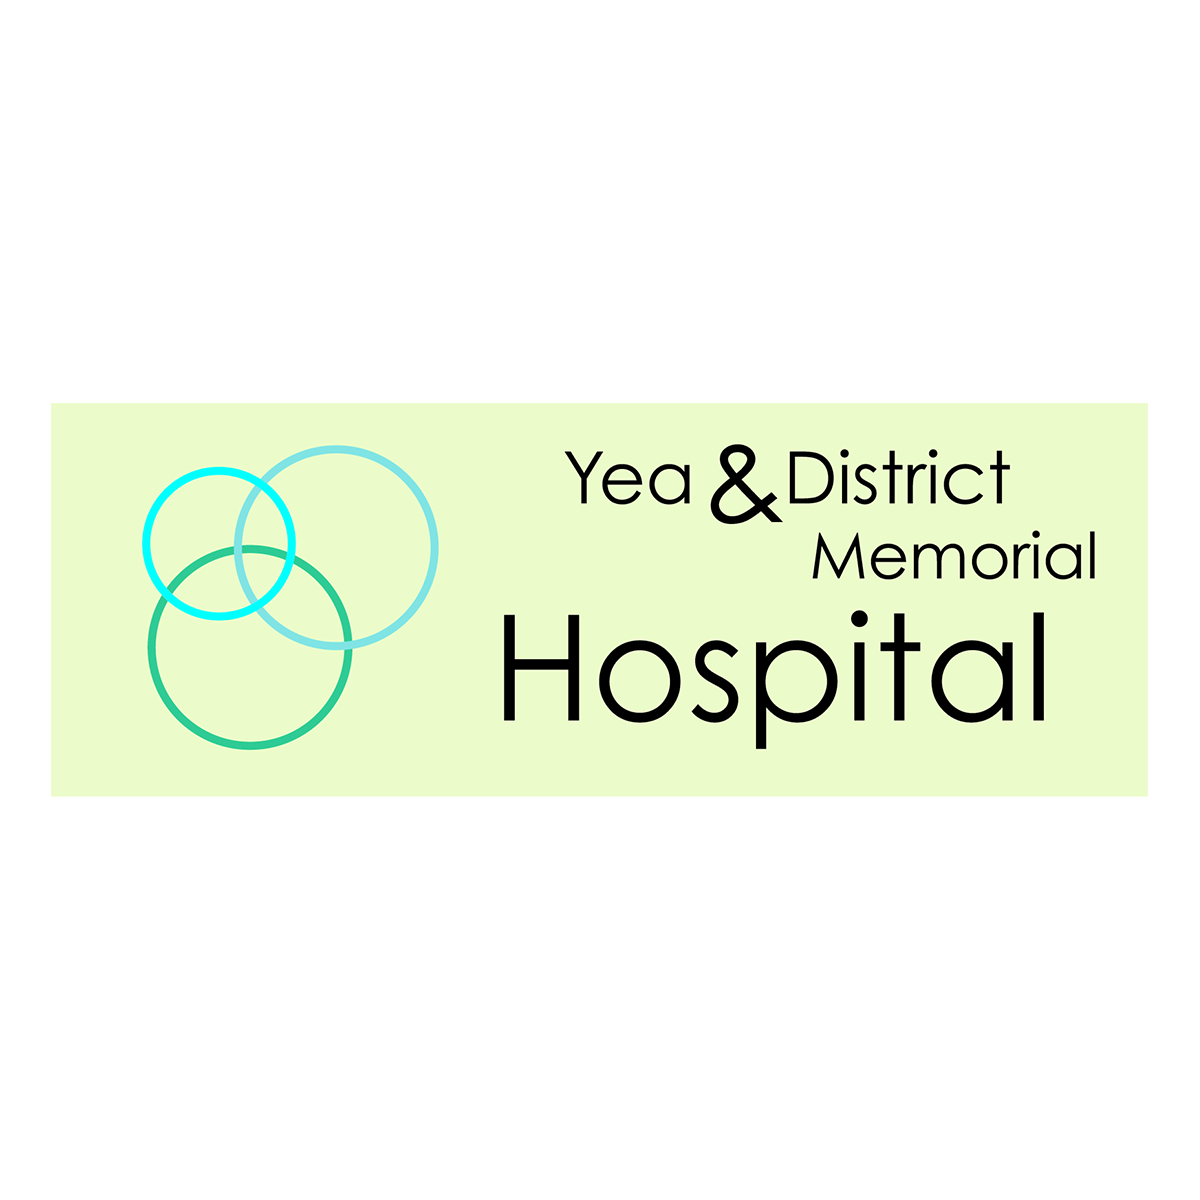 Yea & District Memorial Hospital